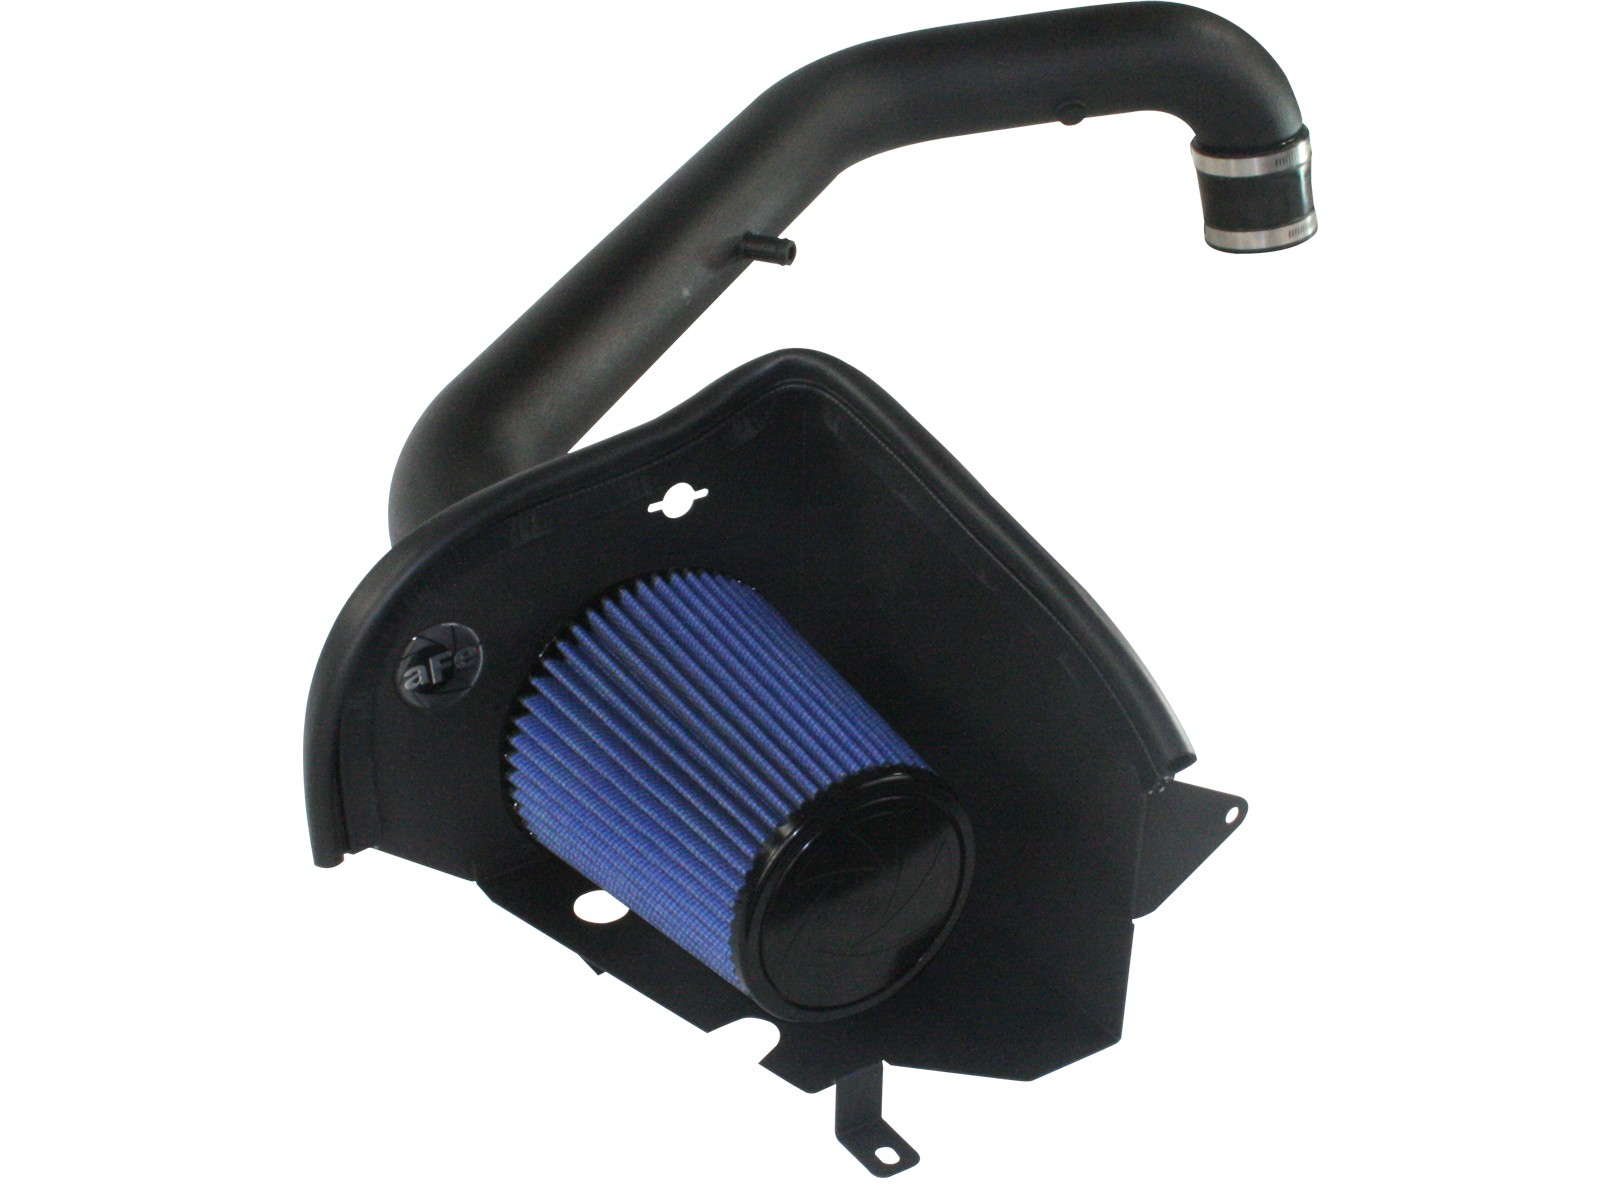 aFe POWER 54-10142 Magnum FORCE Stage-2 Pro 5R Cold Air Intake System